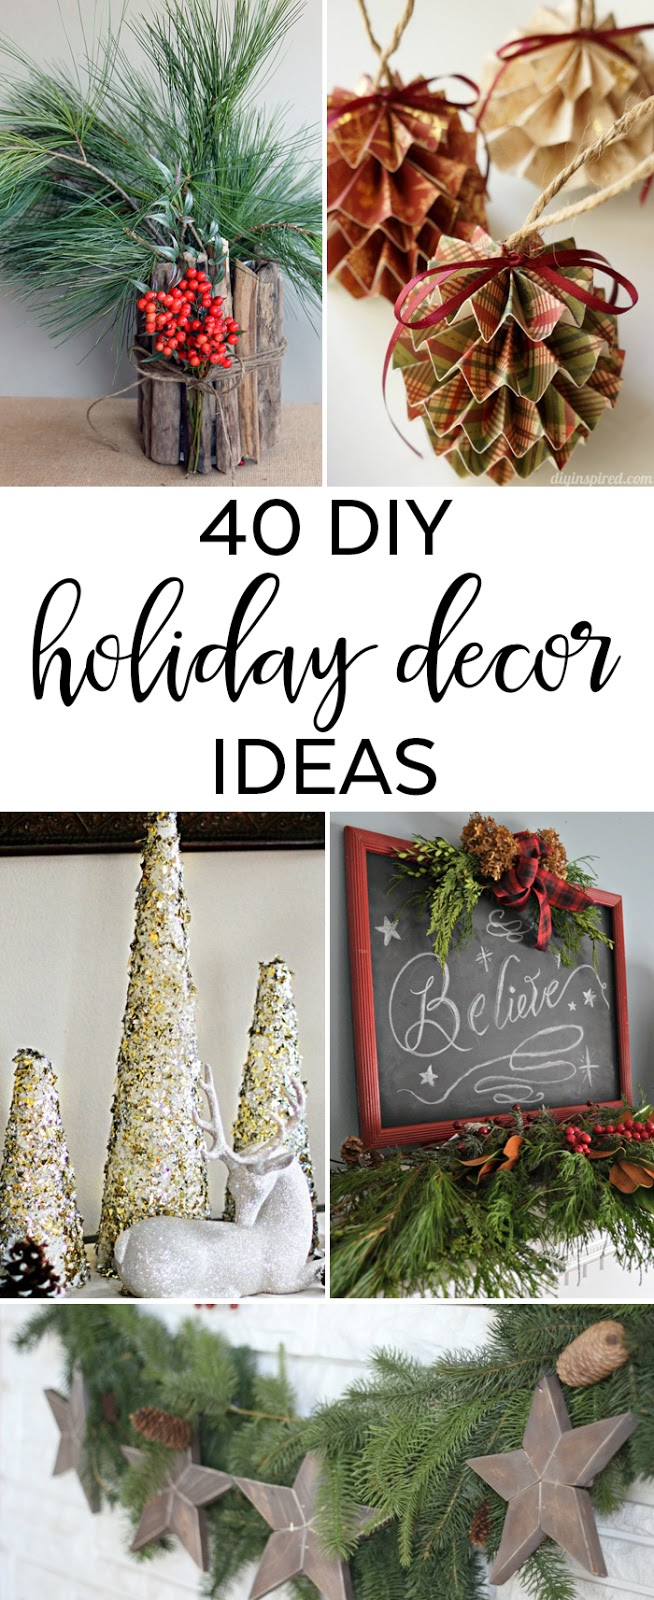 Life With 4 Boys 40 Holiday Decor Ideas To Spruce Up Your